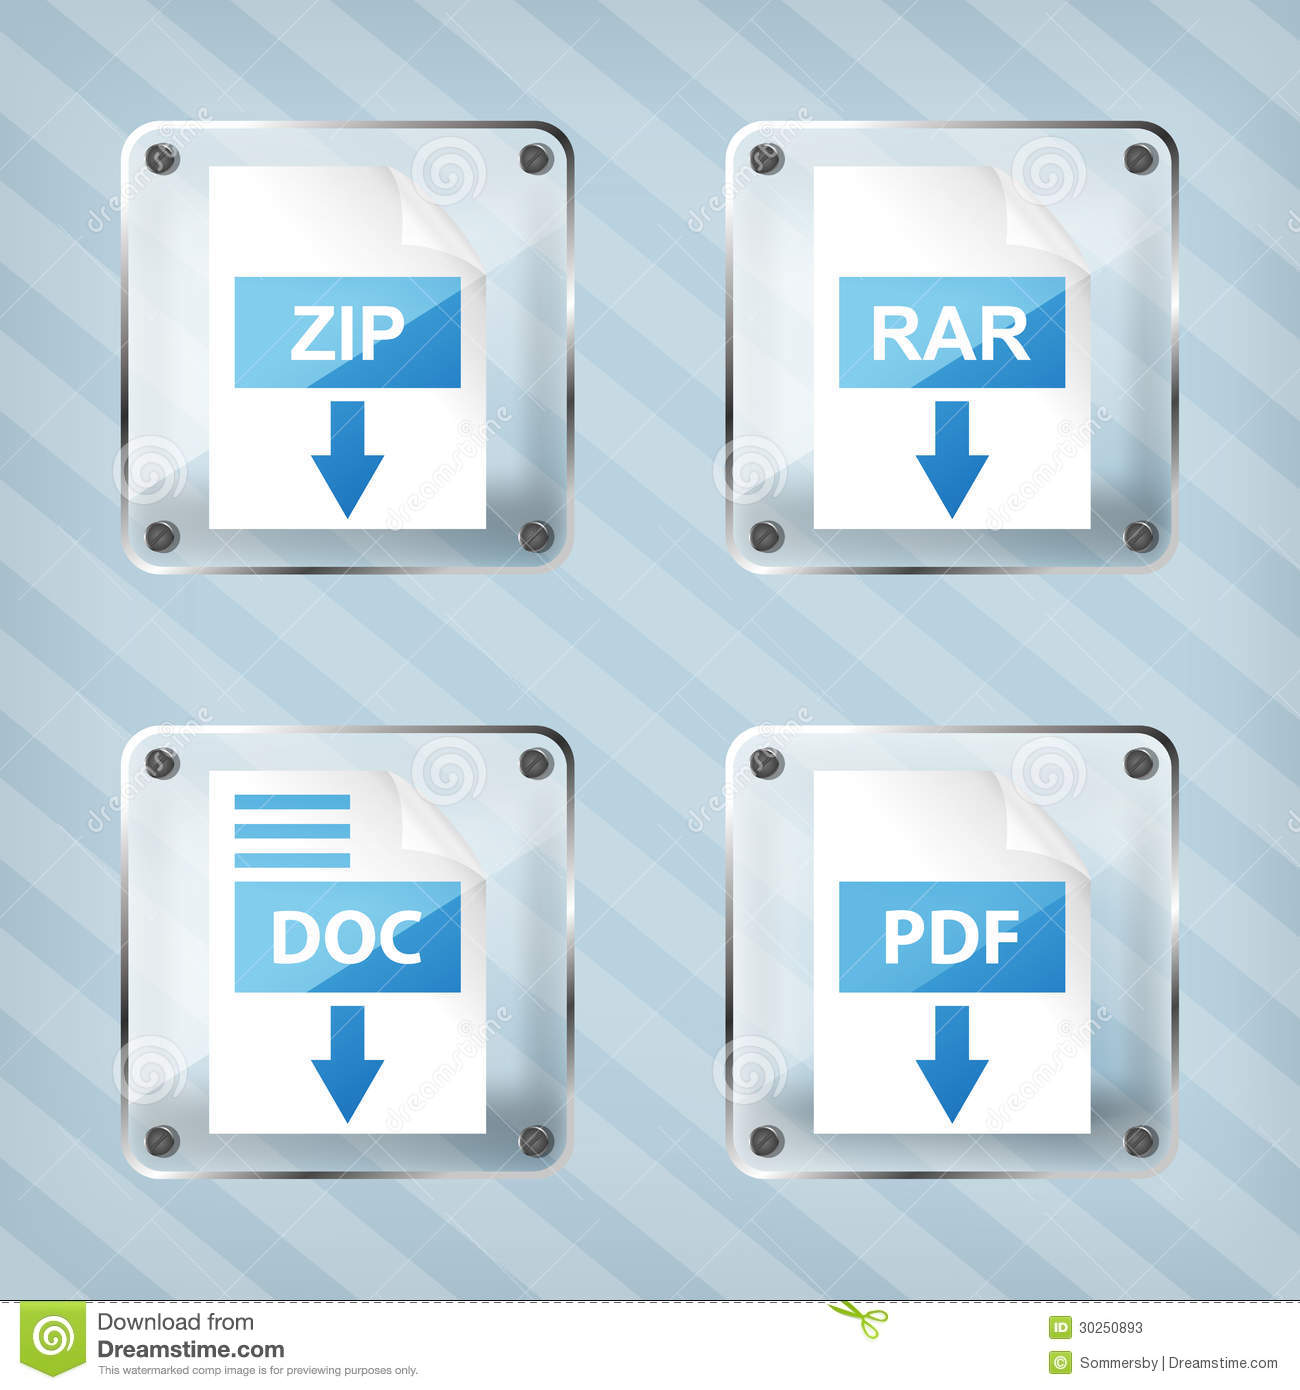 how to zip a pdf on a mac